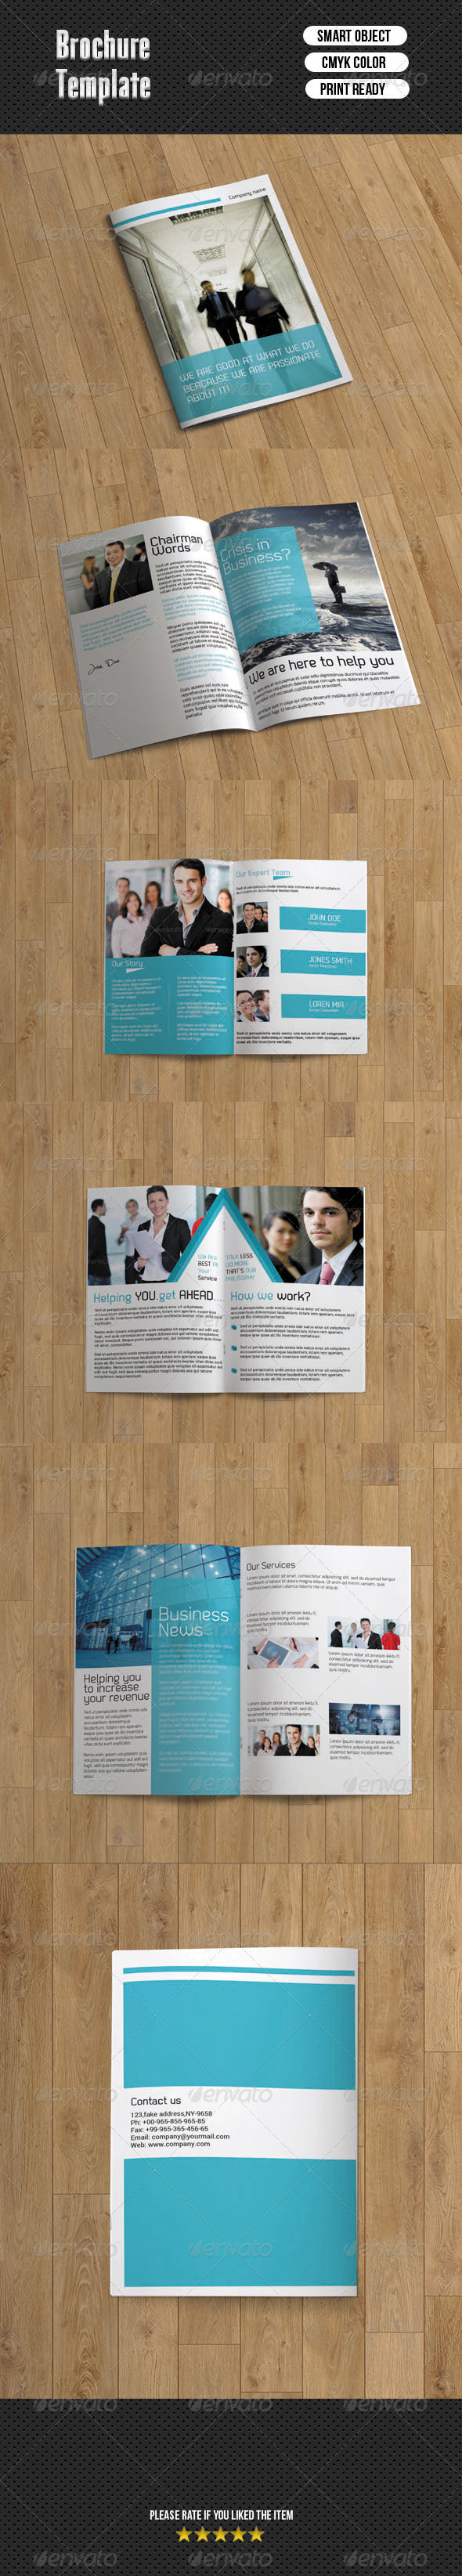 GraphicRiver Business Brochure Template 6892312